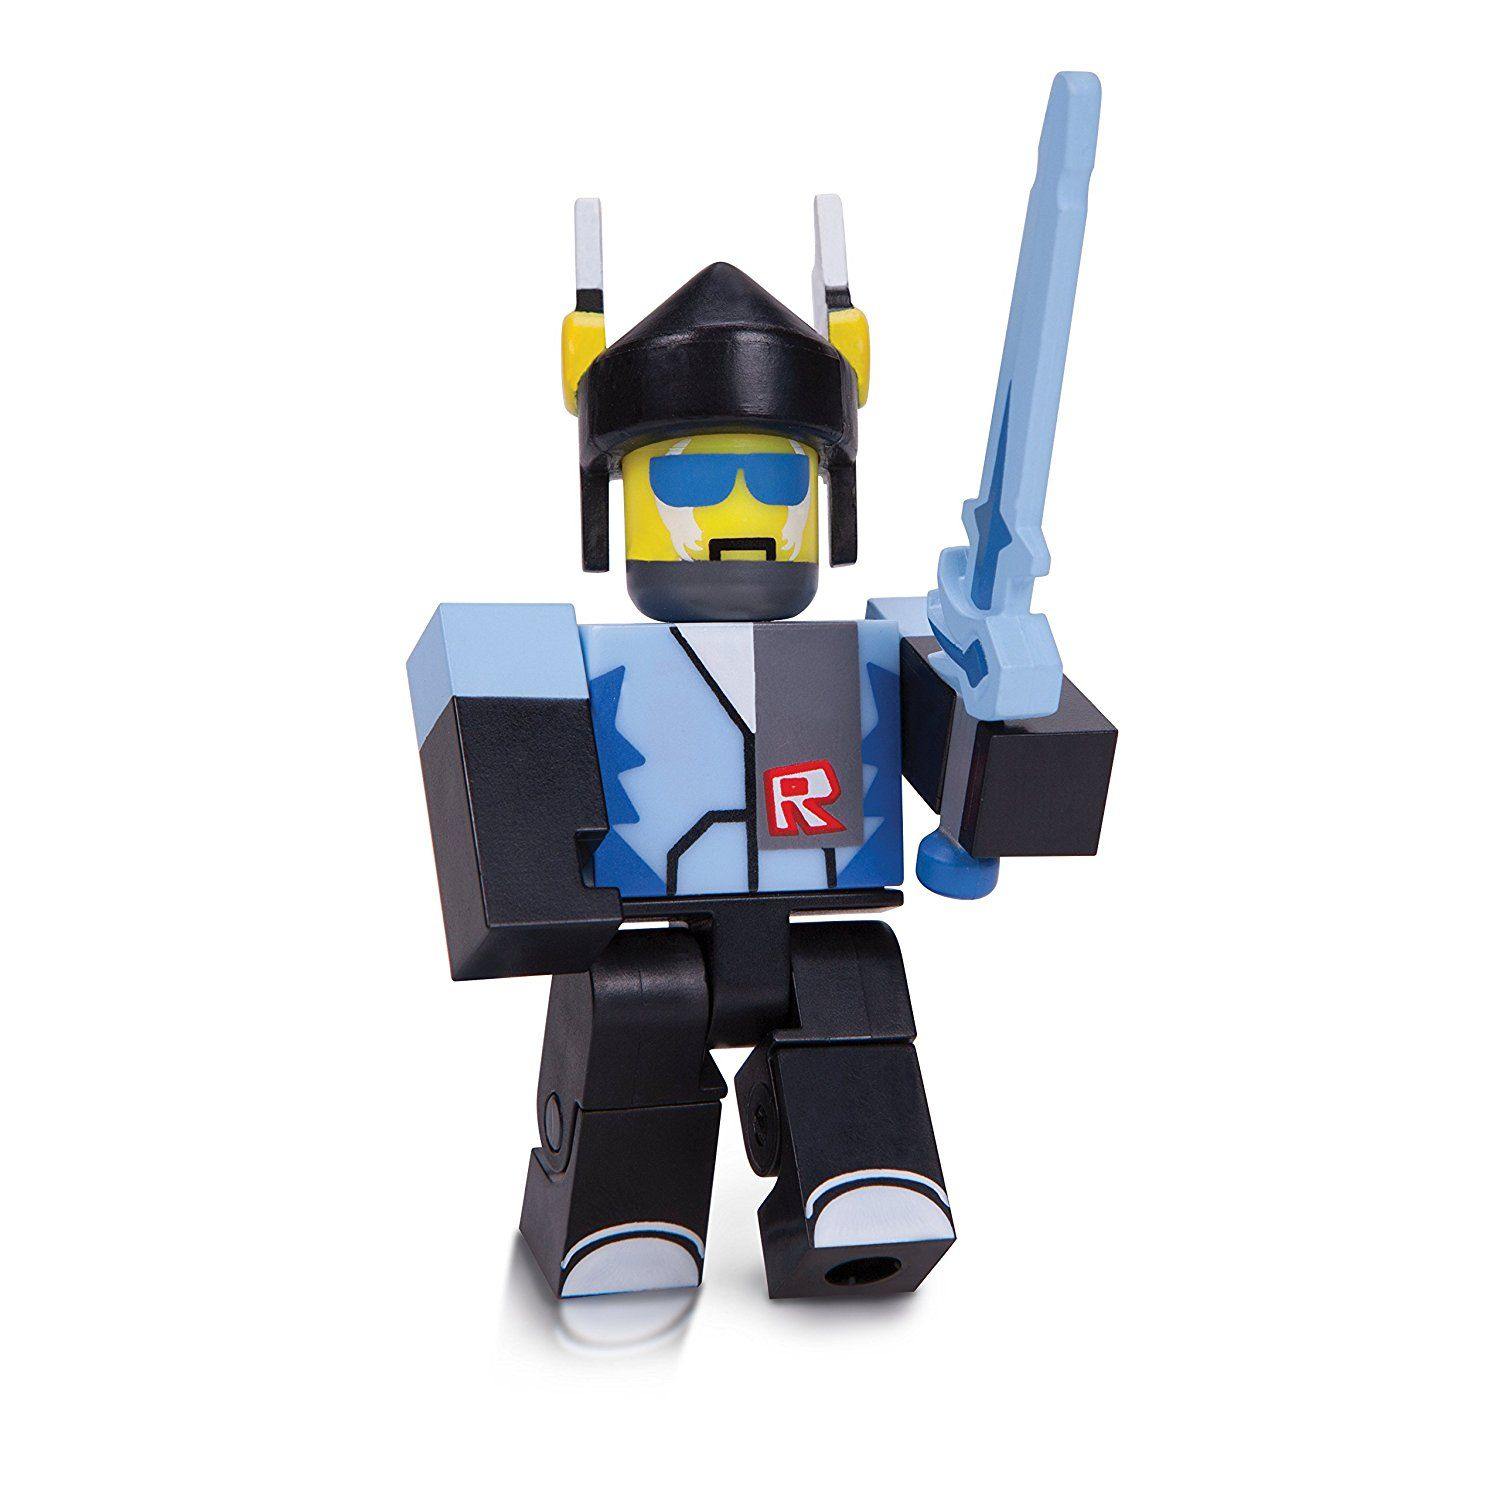 Details About Roblox Clown Mini Figure No Code Loose Roblox Action Collection Legends Of Roblox Six Figure Pack Includes Exclusive Virtual Item Walmart Com In 2020 Roblox Roblox Adventures The Incredibles